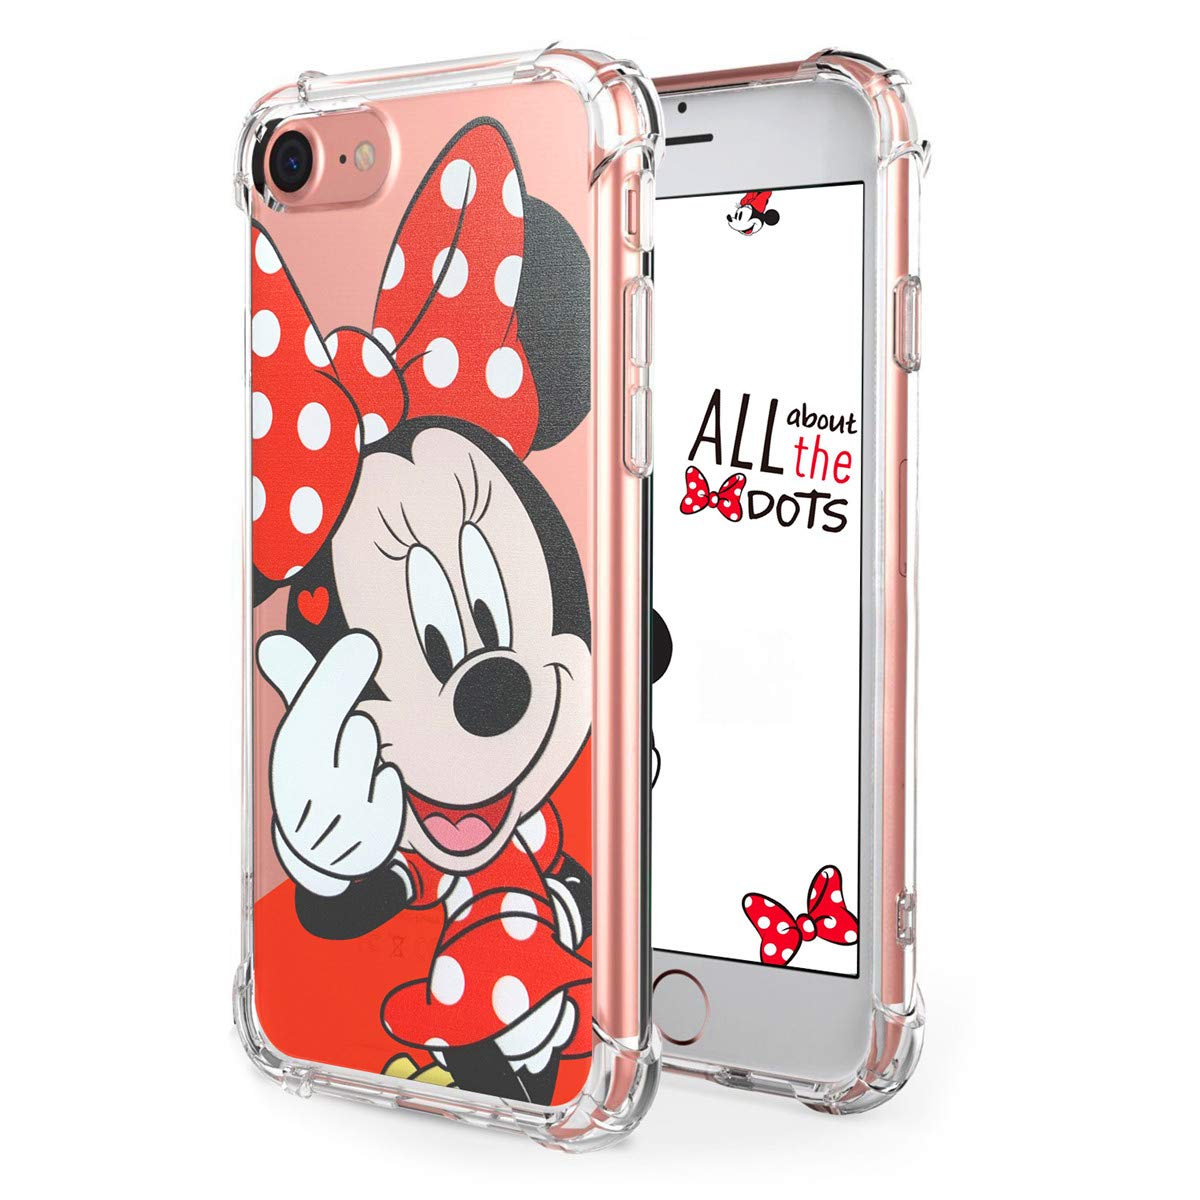 "Logee TPU Minnie Mouse Cute Cartoon Clear Case for iPhone 8/iPhone 7 4.7"",Fun Kawaii Animal Soft Protective Cover,Ultra-Thin Shockproof Funny Creative ..."